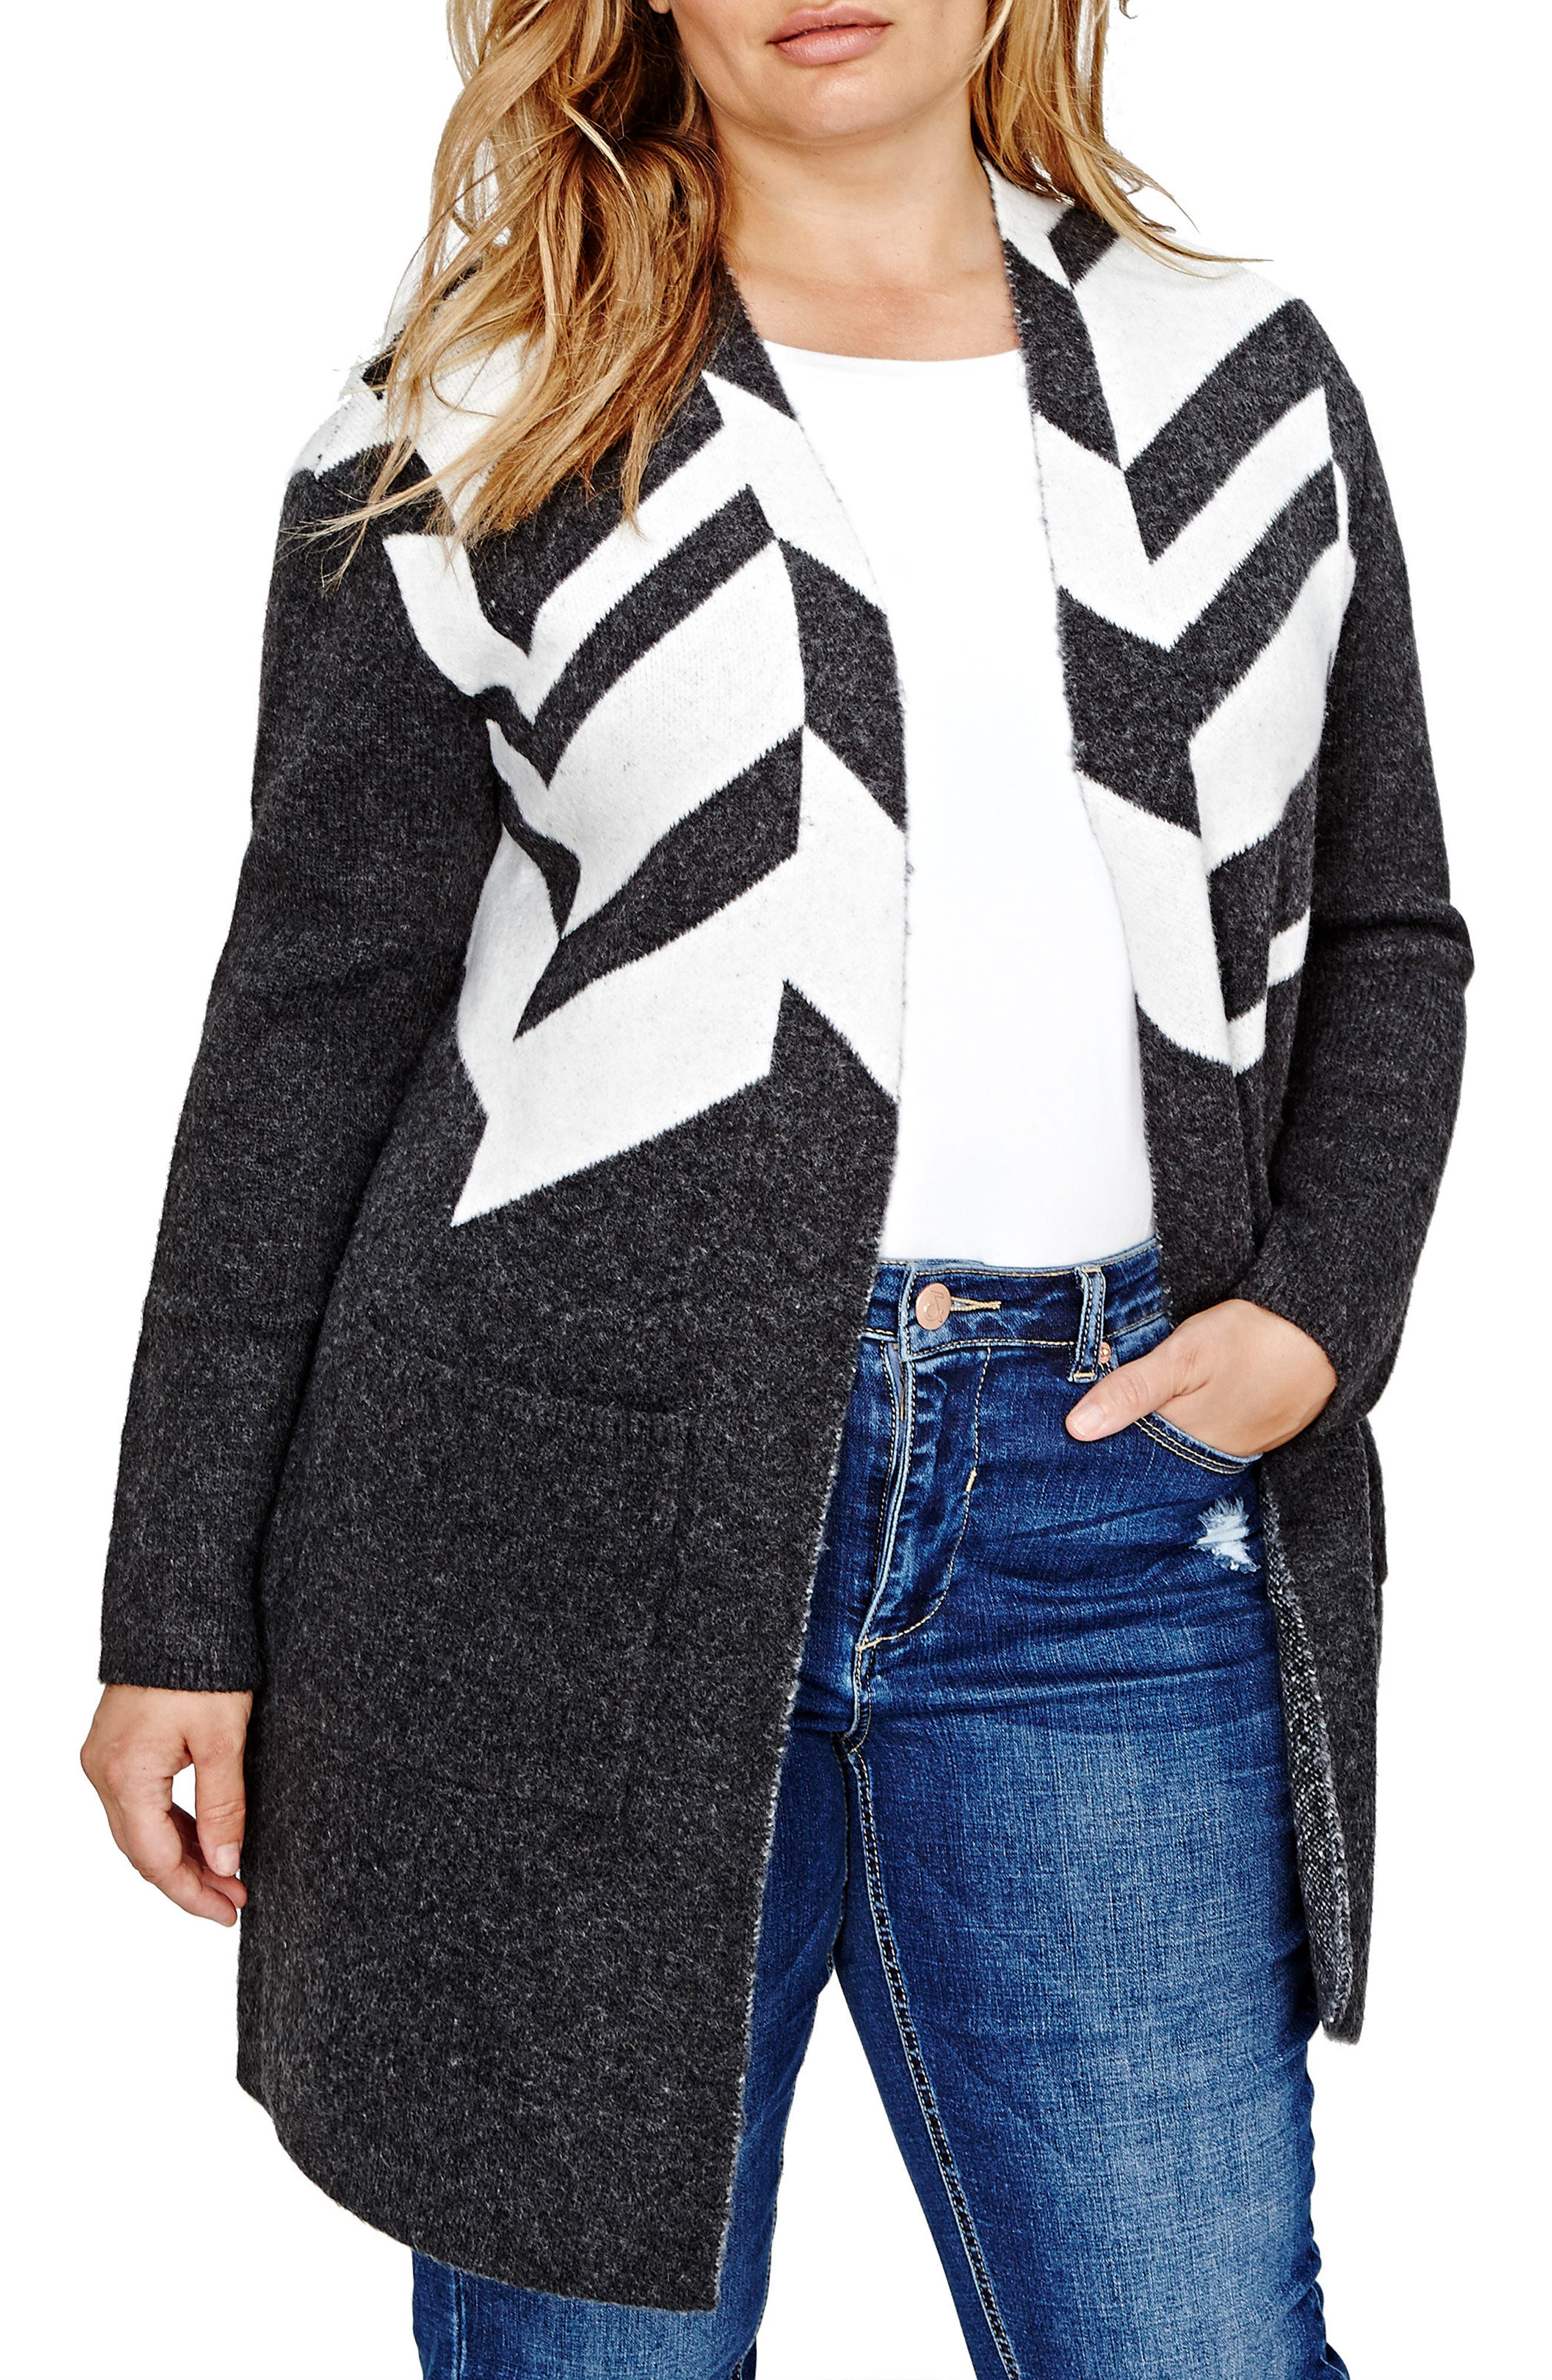 ADDITION ELLE LOVE AND LEGEND Patterned Sweater Coat (Plus Size)